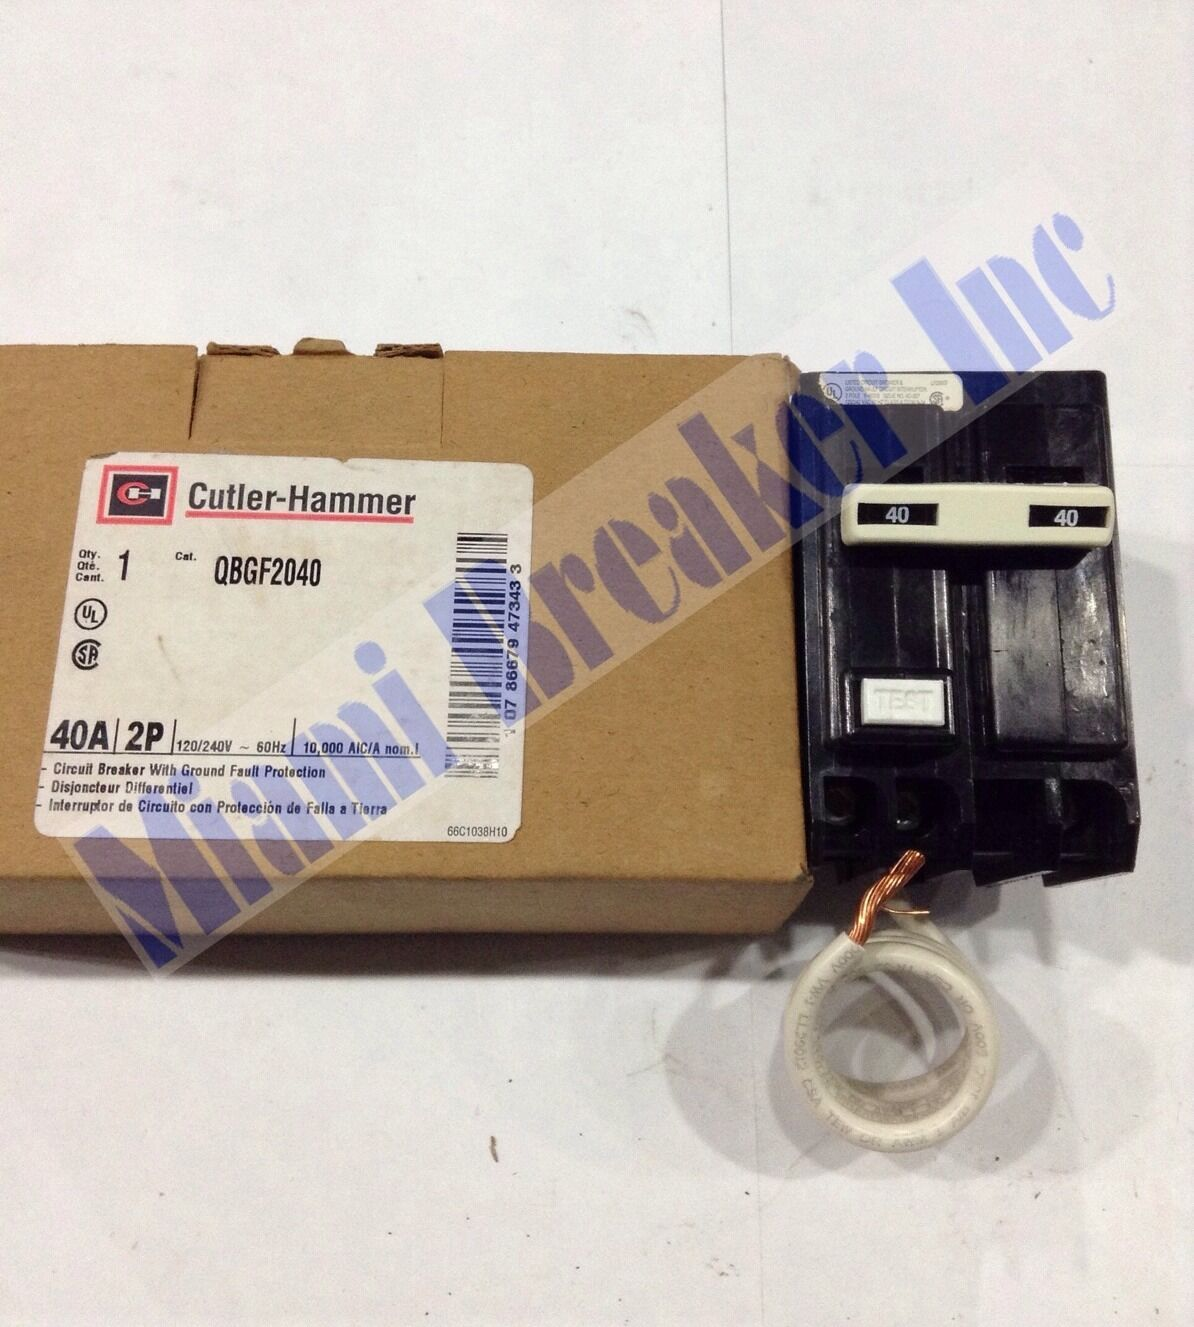 Qbgf2040 Cutler Hammer Circuit Breaker 2 Pole 40 Amp 120 240v New 30 3 4 In Doublepole Type Ch Breakerch230 The Home Box 1 Of 4free Shipping